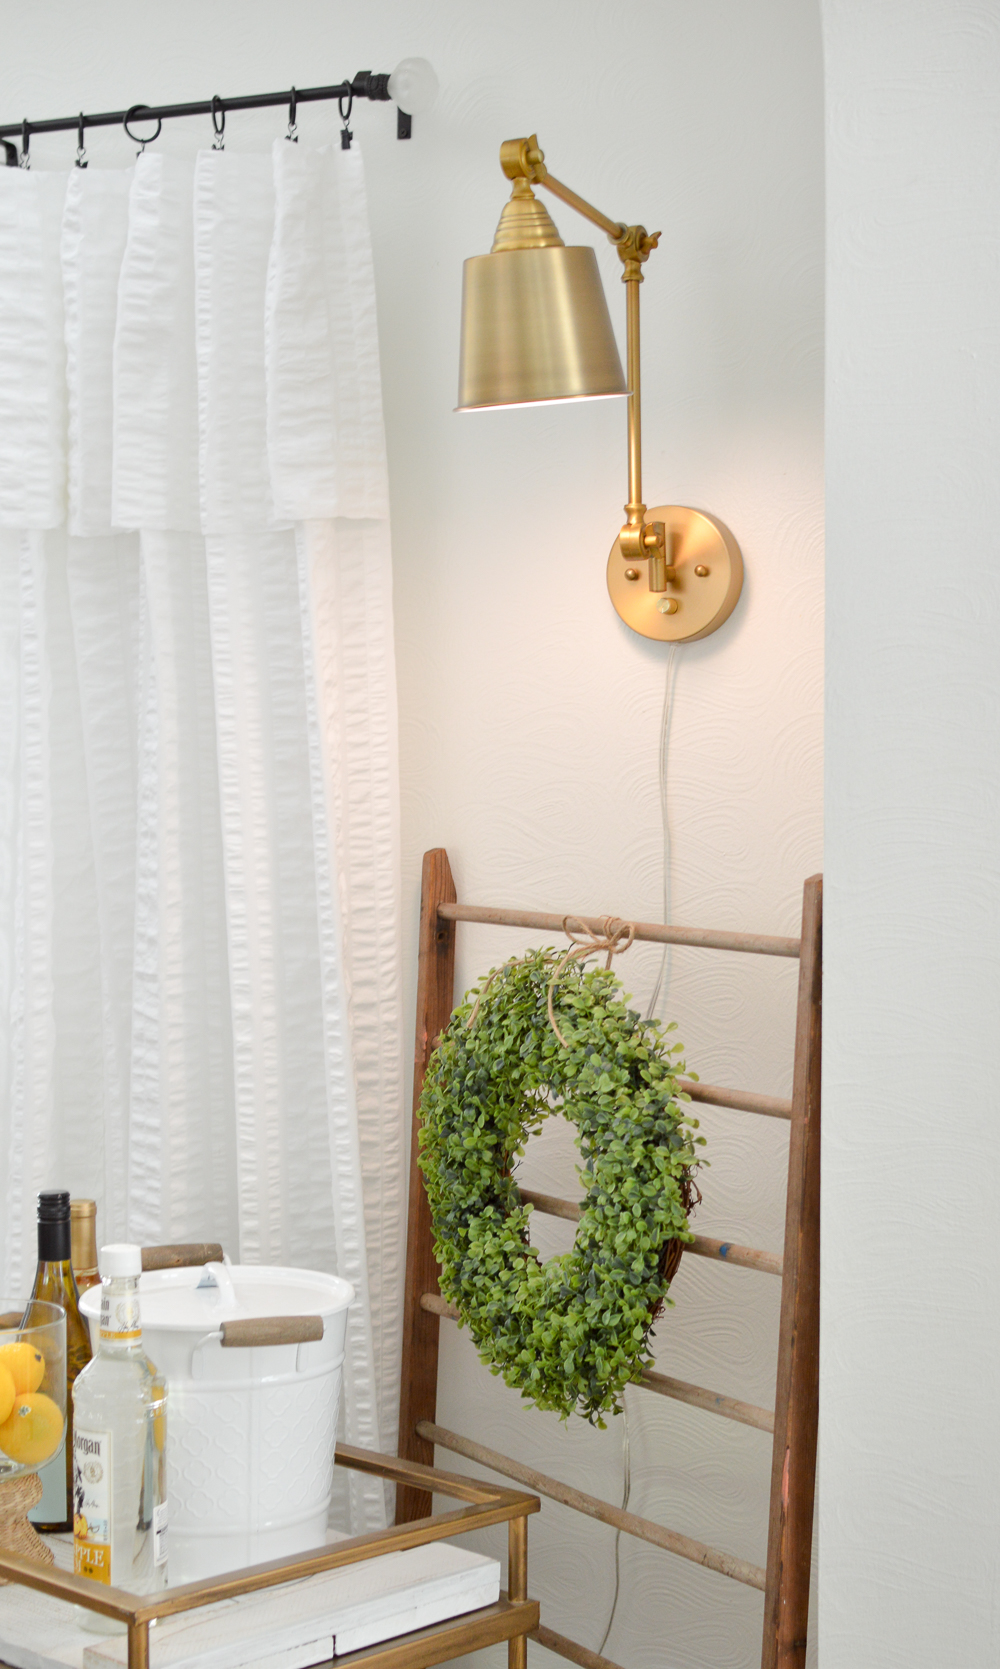 Plug in wall mount brass wall sconce light lamps.